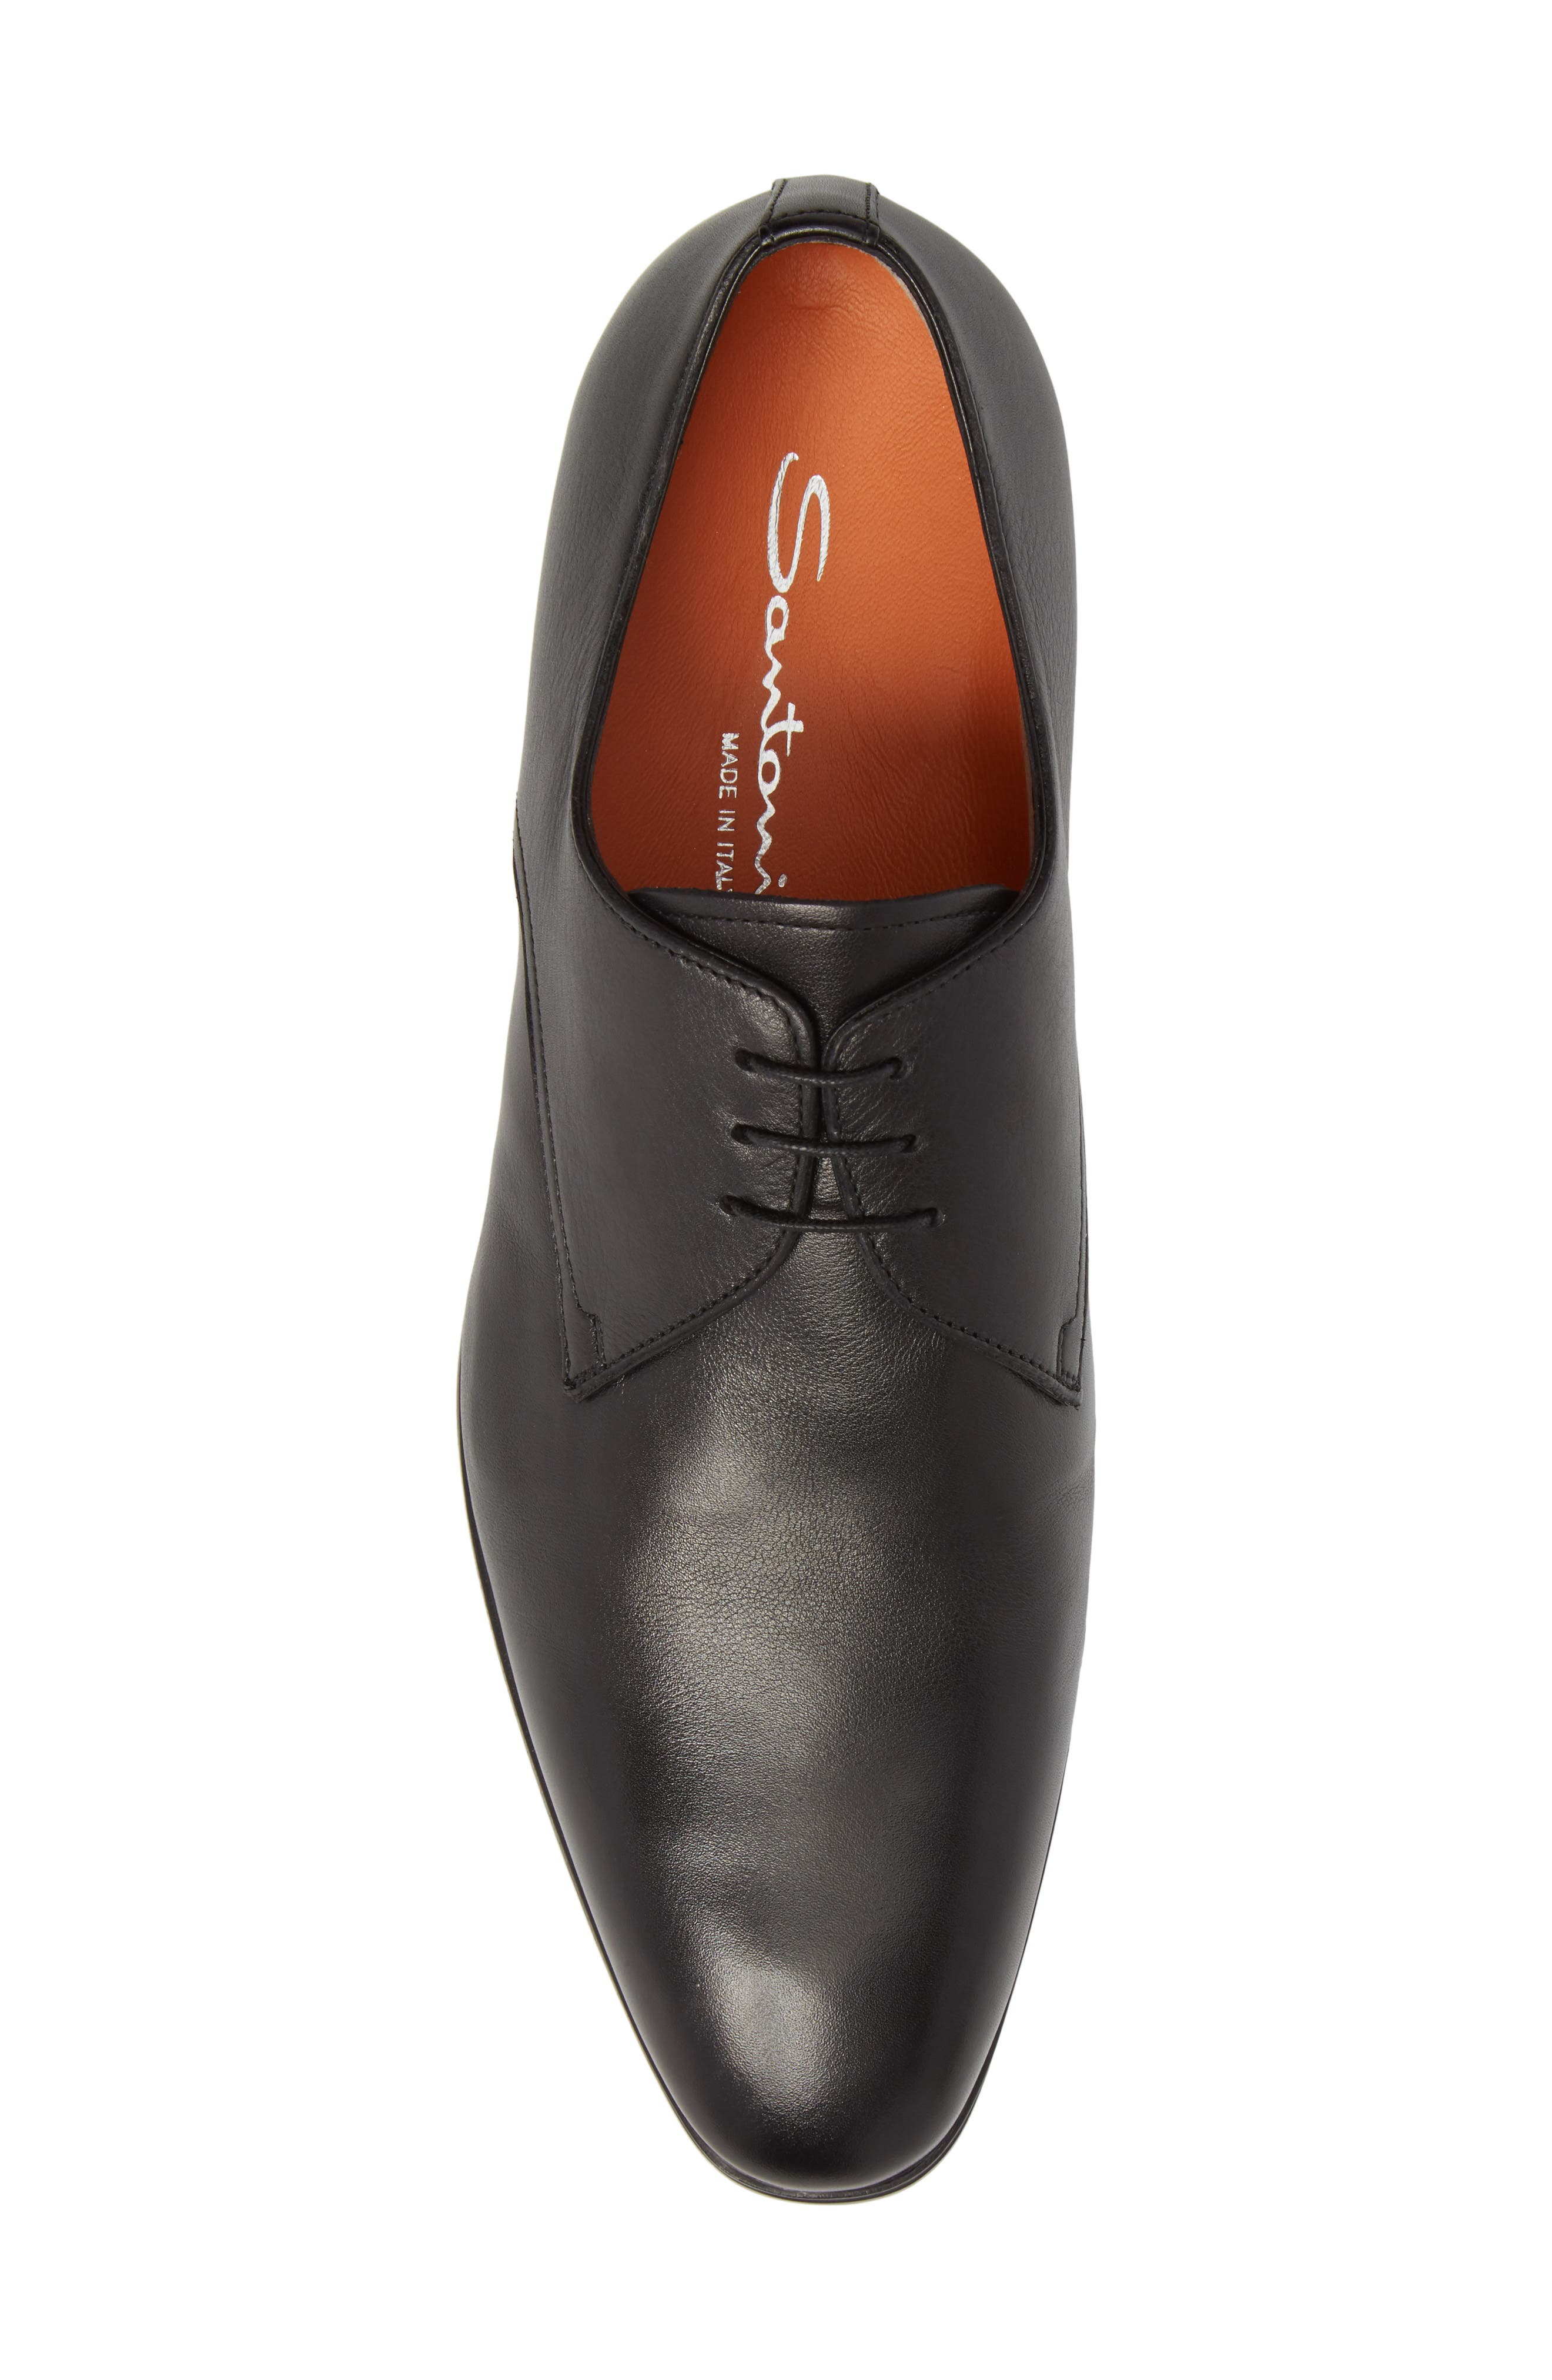 SANTONI,                             Glenn Plain Toe Derby,                             Alternate thumbnail 5, color,                             001